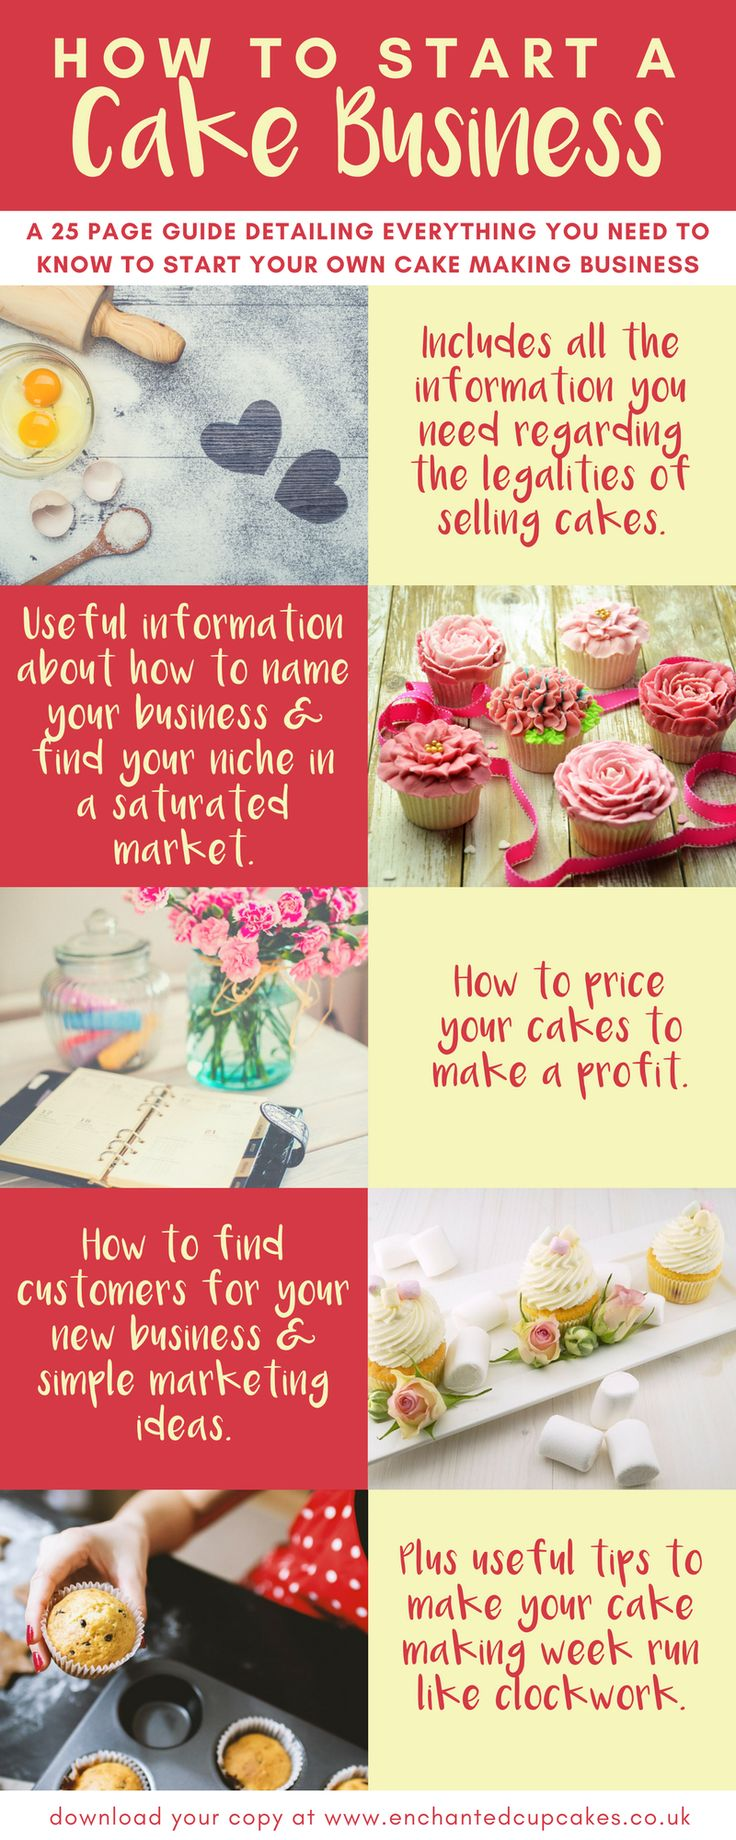 Cake Decorating Techniques Names : 25+ best ideas about Cake business on Pinterest Home bakery business, Home bakery and Wilton ...